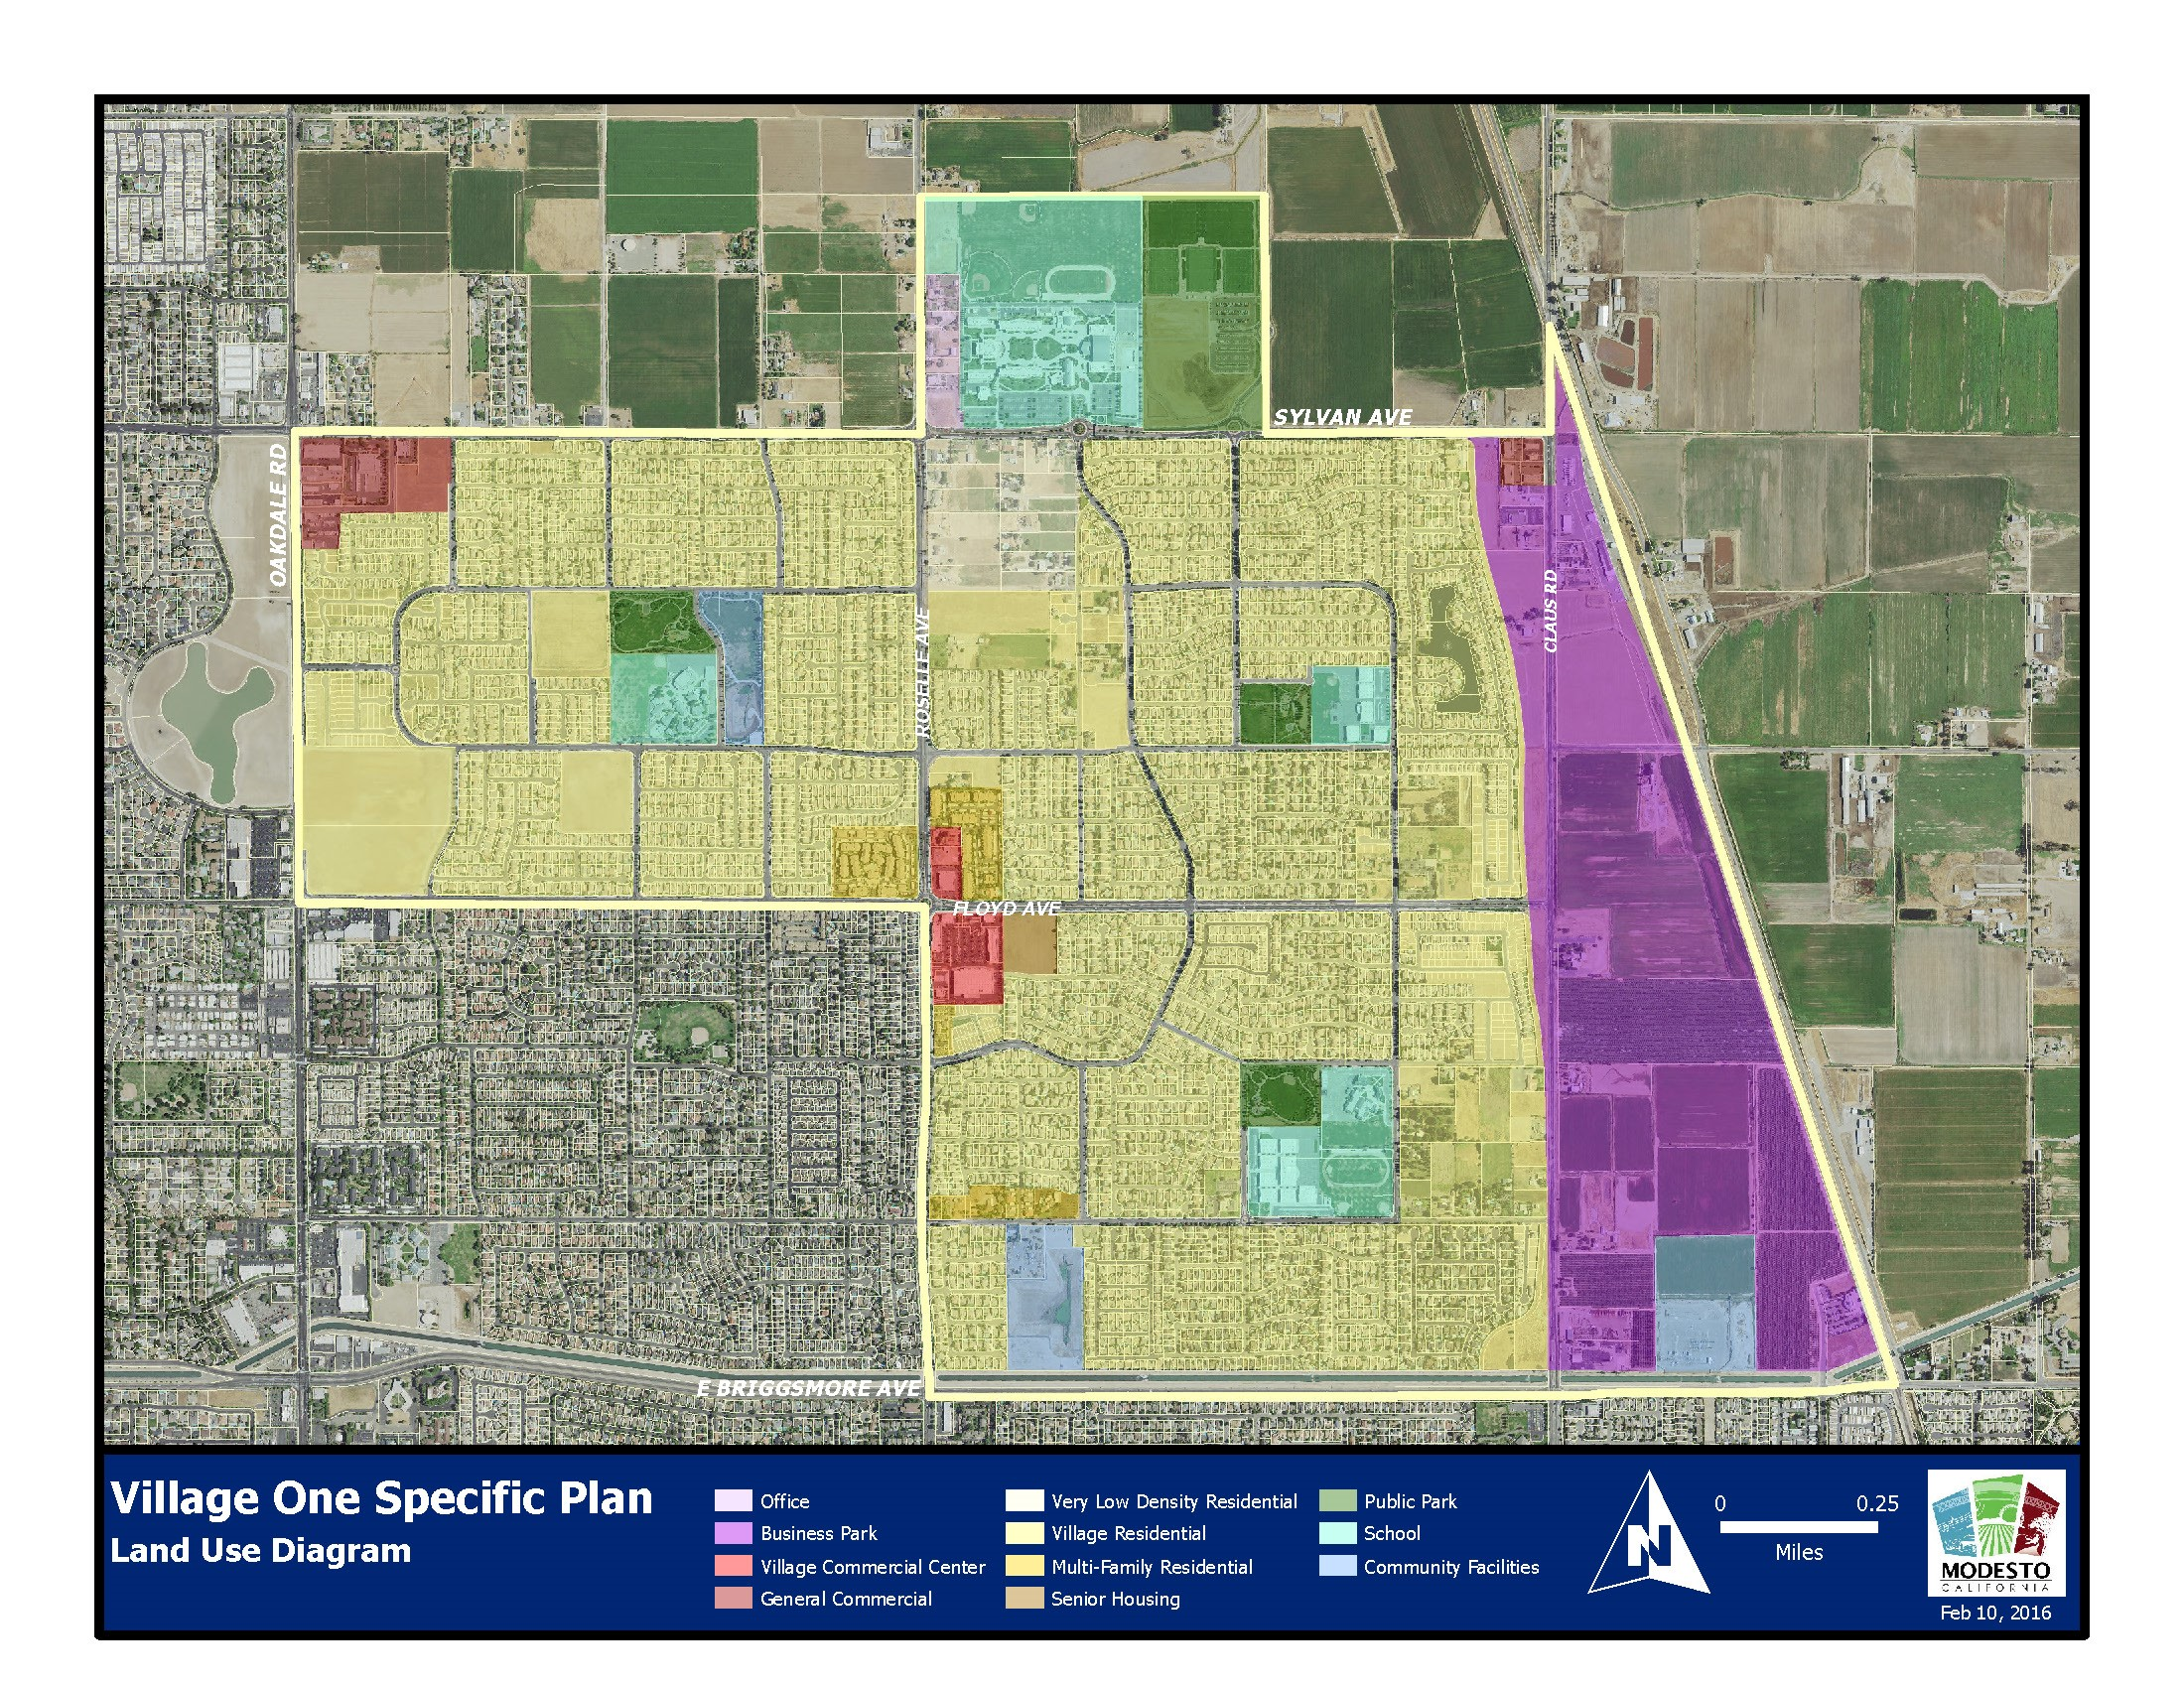 Village One Specific Plan Land Use Diagram